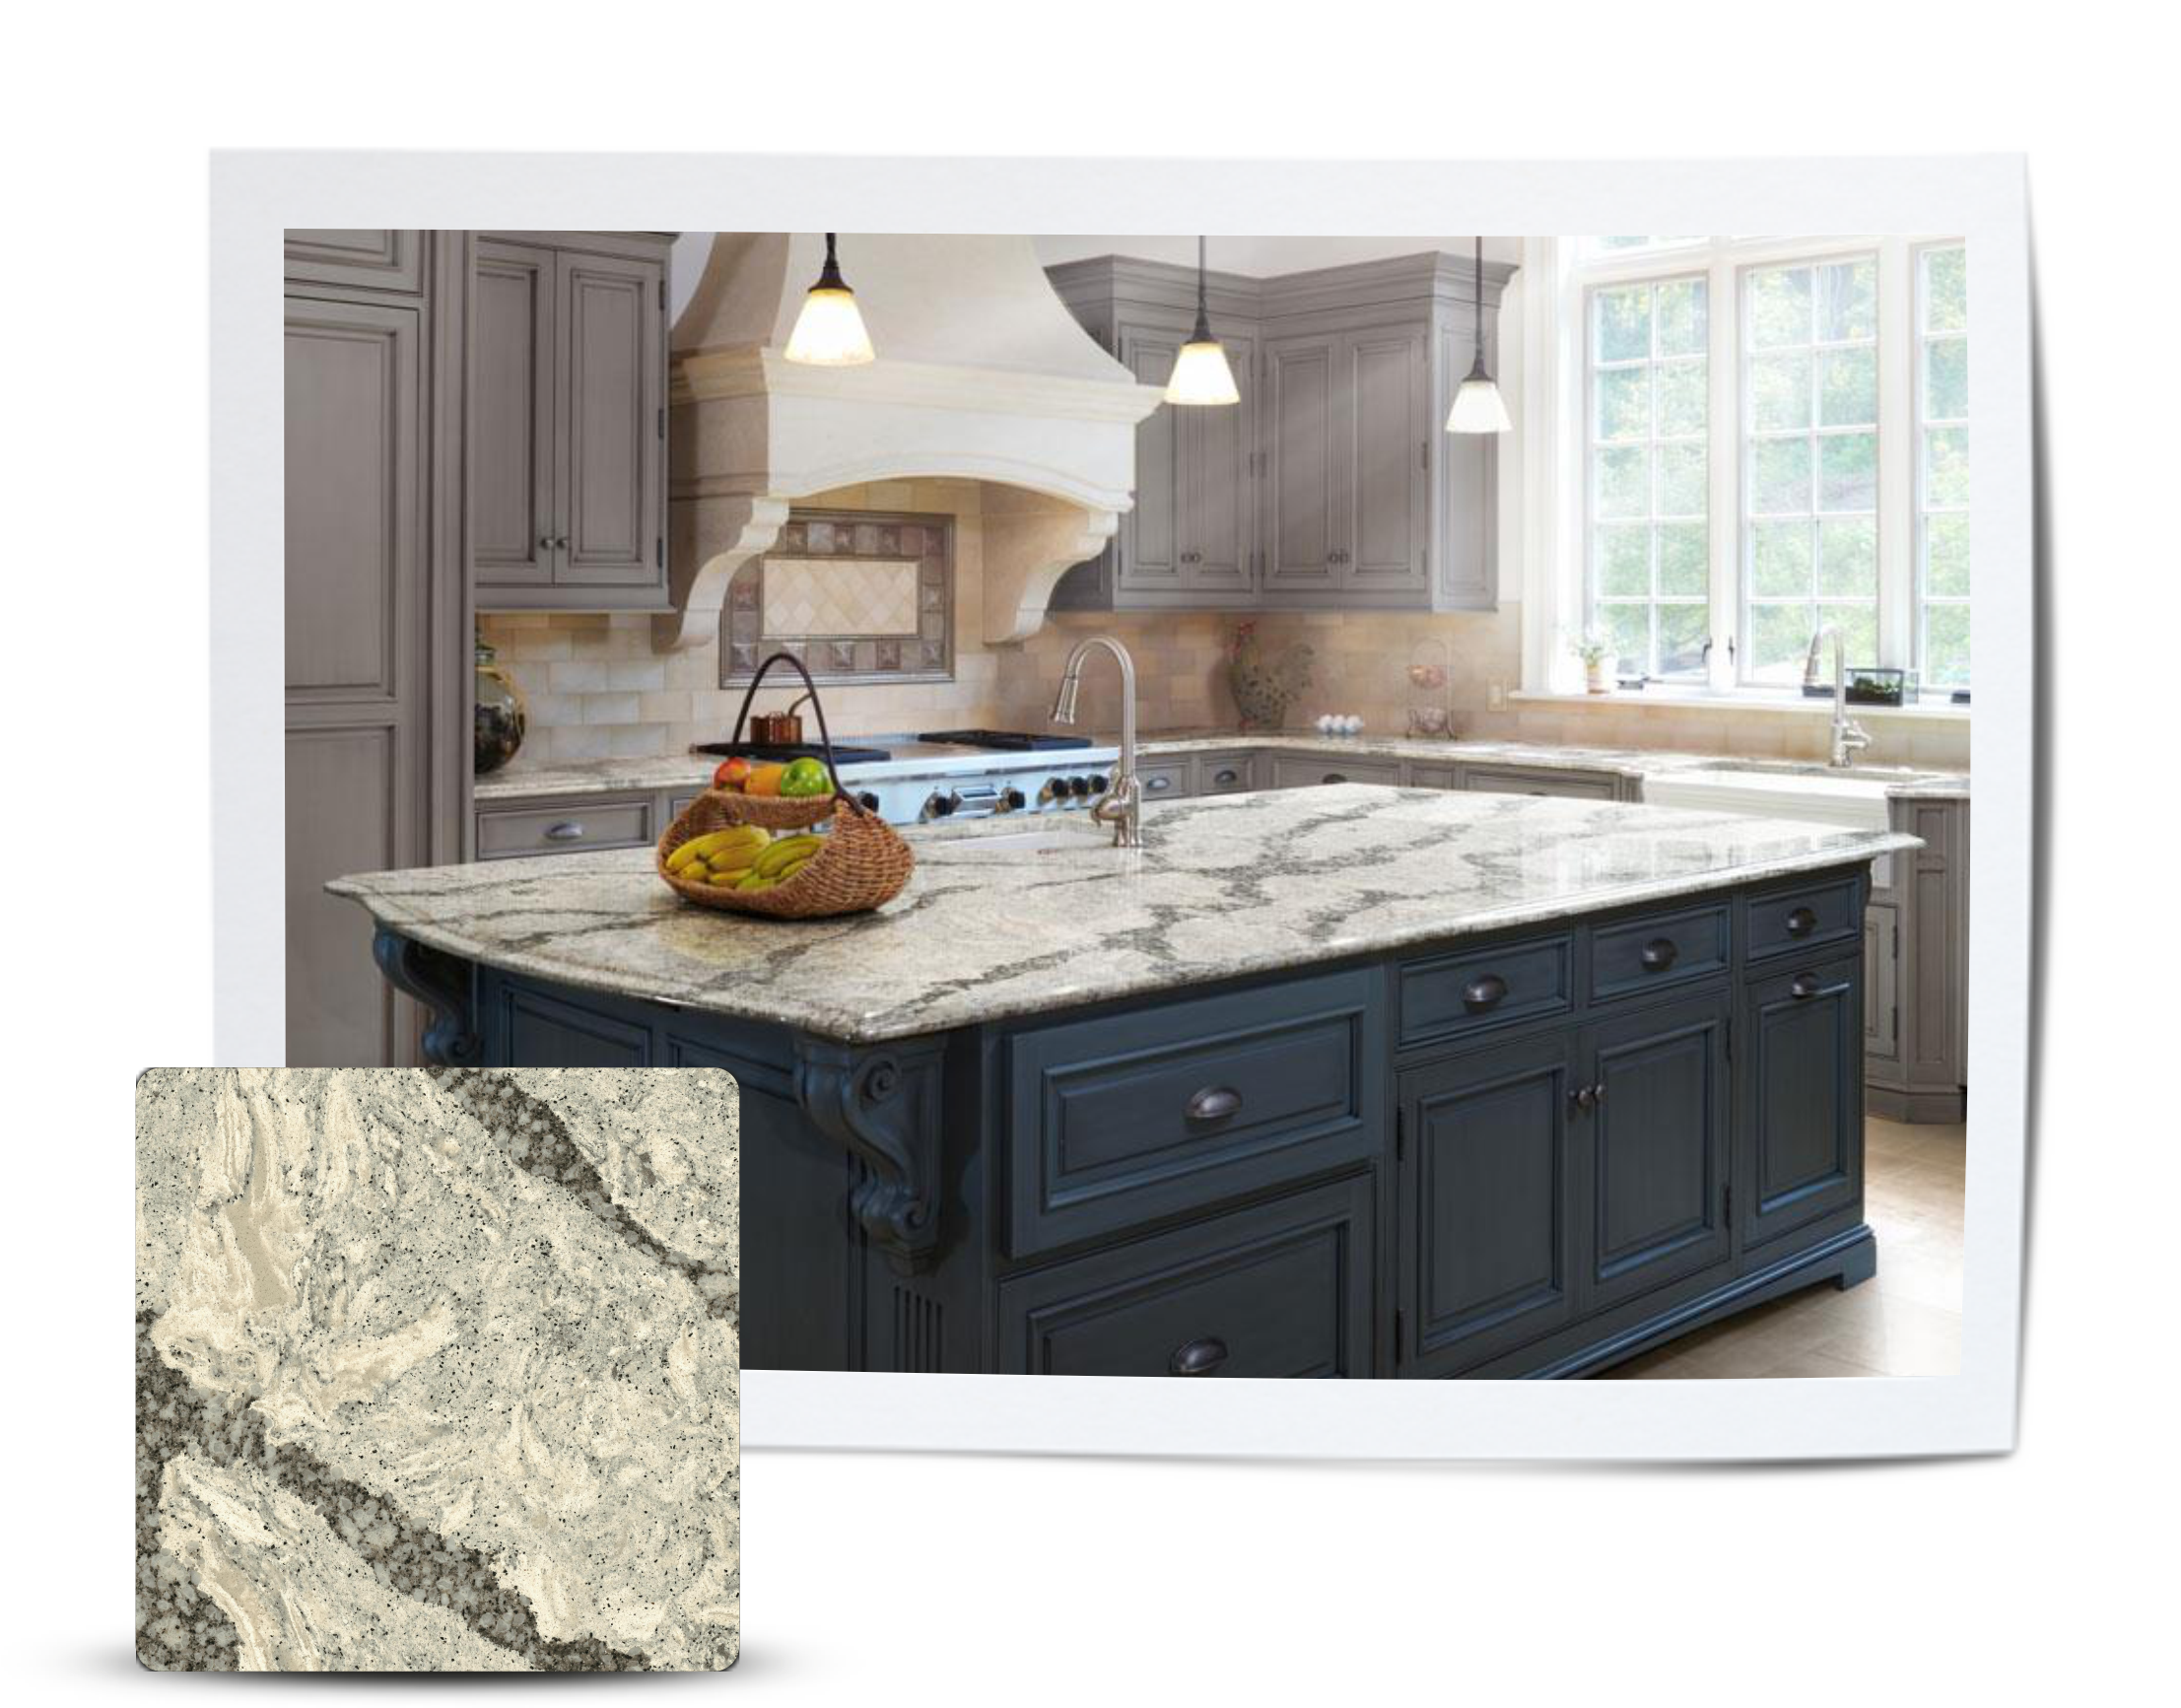 A classic kitchen with rich contrasting cabinets featuring Seagrove by Cambria counter tops